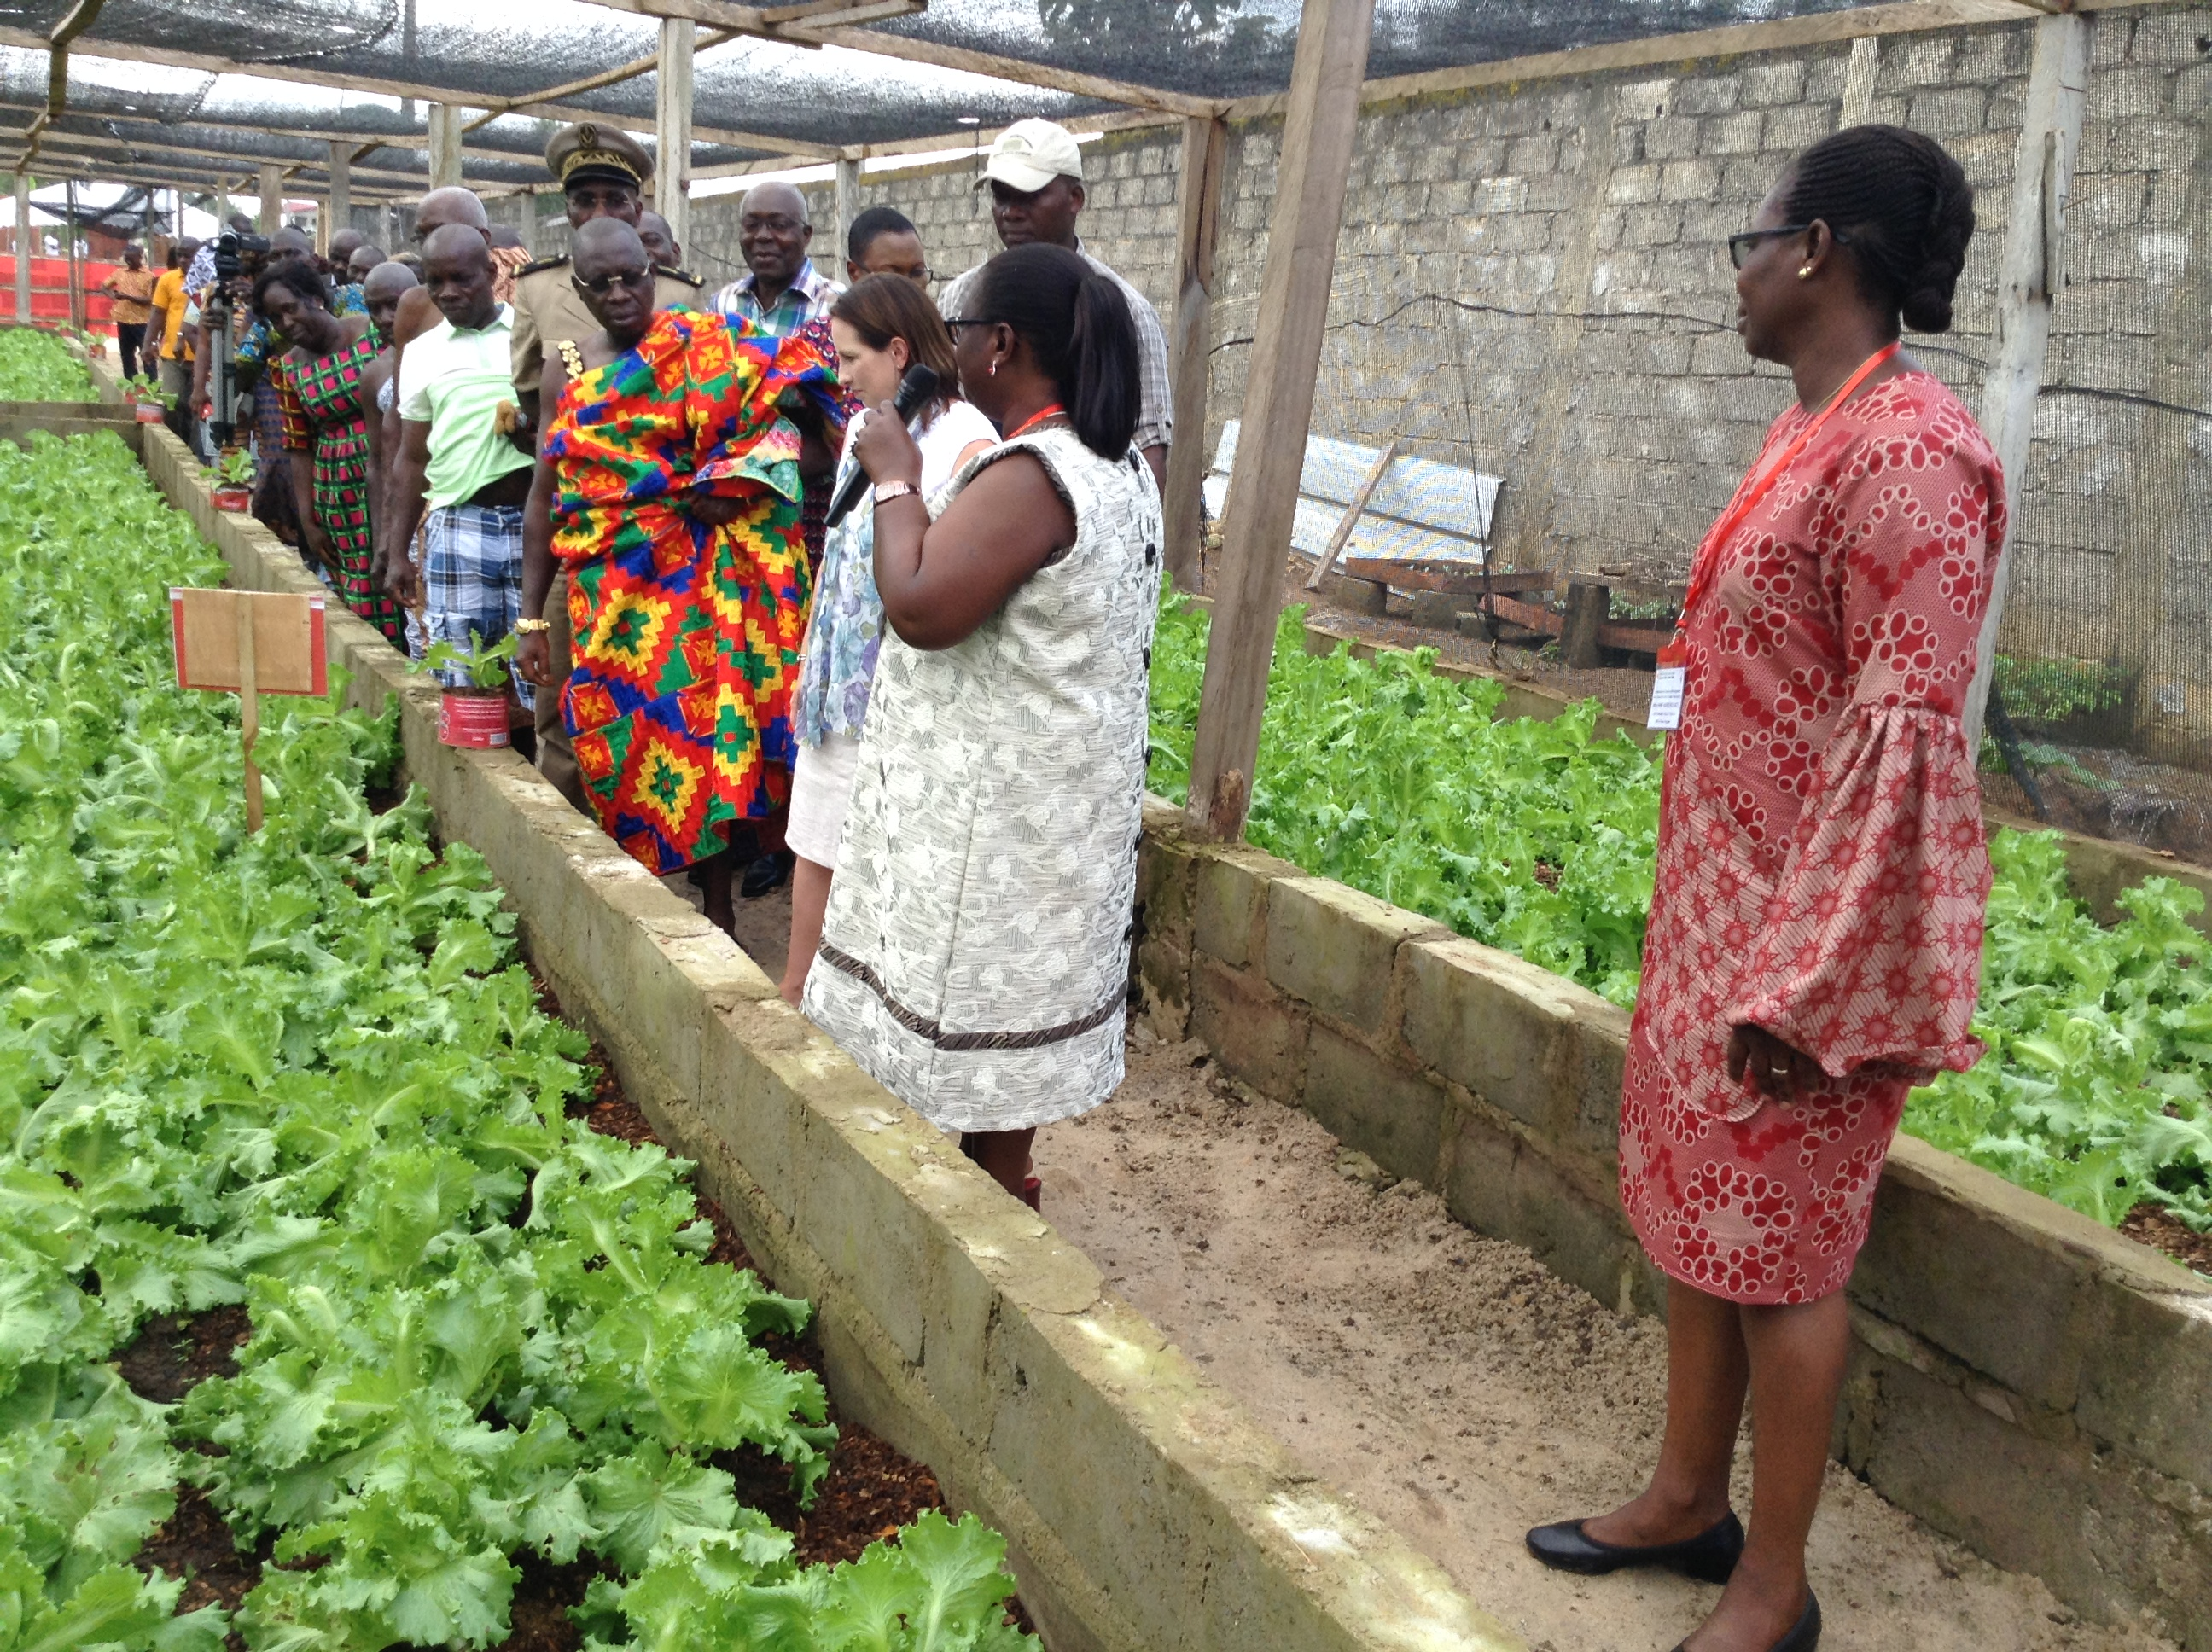 Ambassador Shouldice visits a new plot of hydroponic farming land with Michelle Morokro from La Pierre Angulaire in Côte d'Ivoire. Credit: Global Affairs Canada